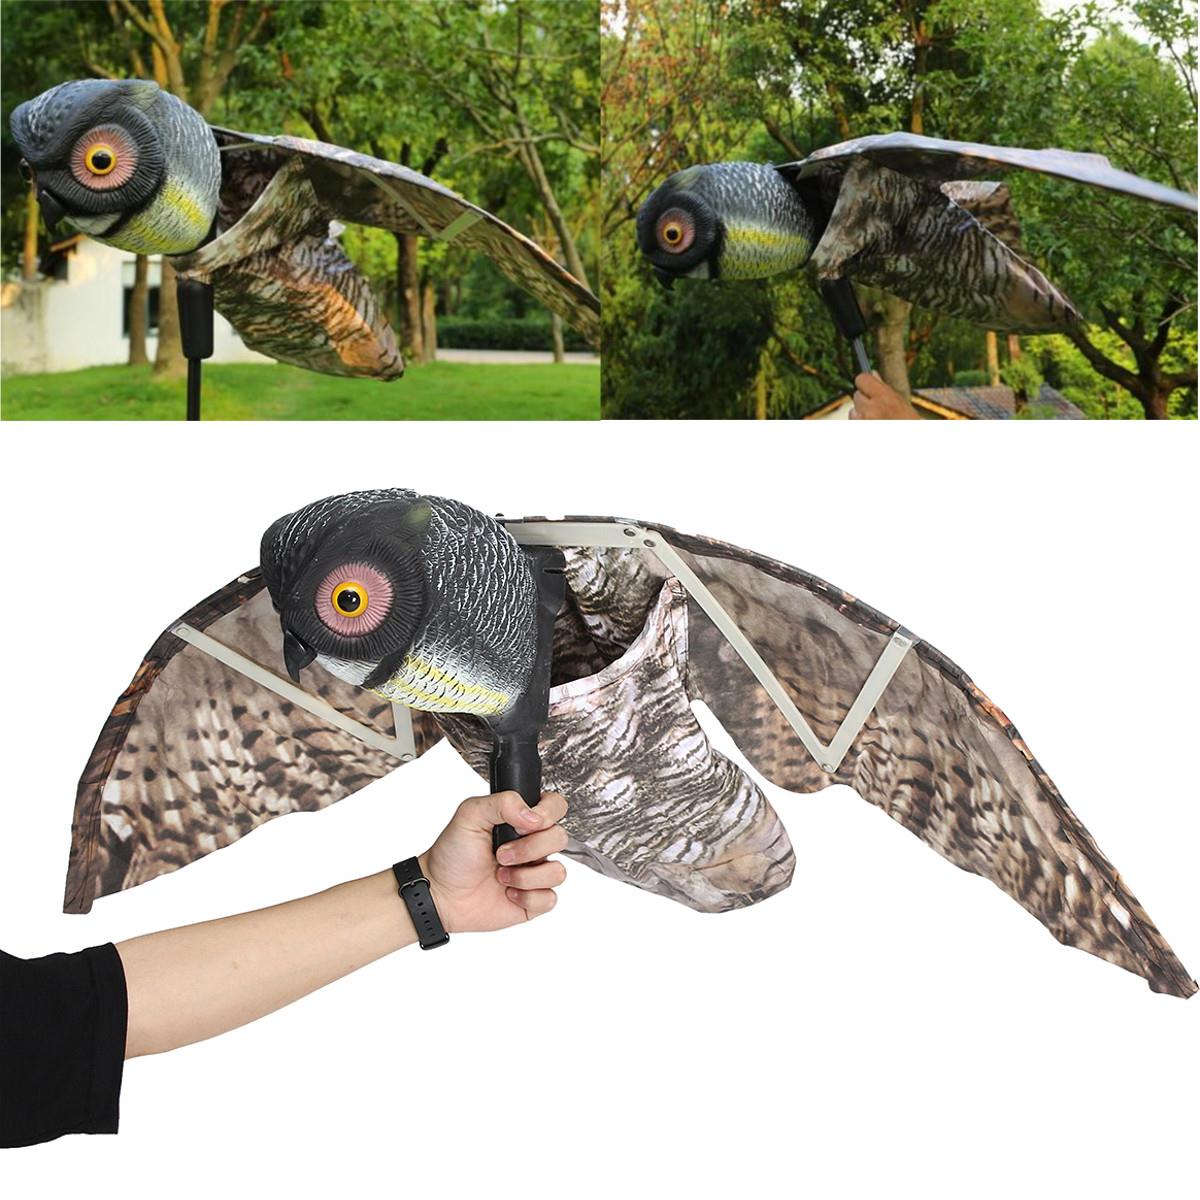 Garten Design Owl Flying Owl Decoy Pest Control Garden Mice Scarer Scarecrow Predator Decoy Pest Scarer Bird Deterrent Outdoor Hunting Decoy